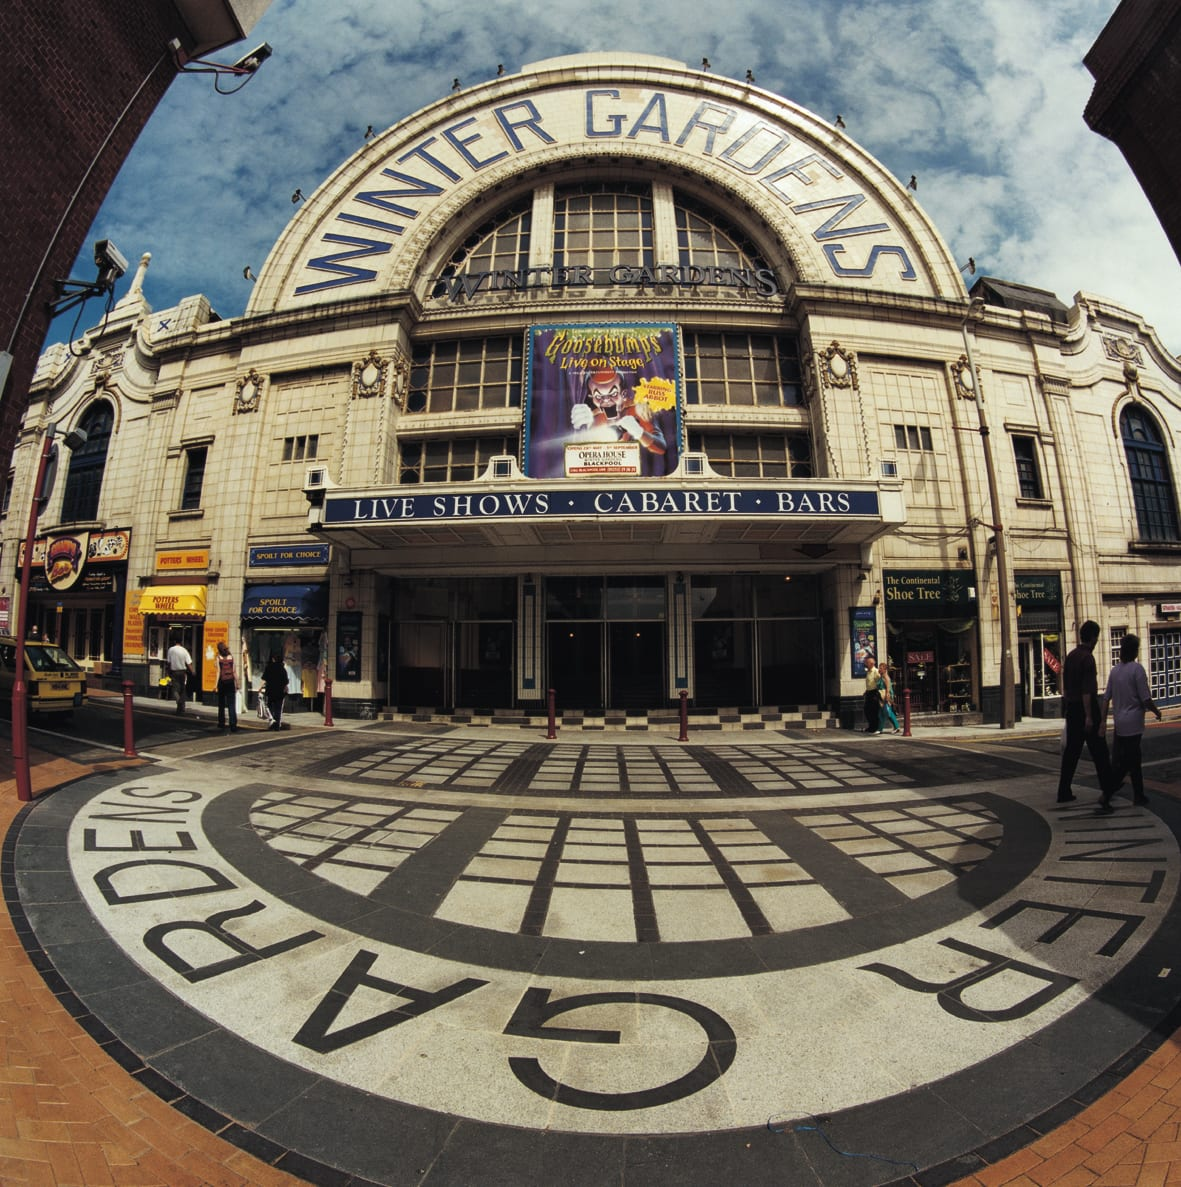 What's On Next At Blackpool Winter Gardens